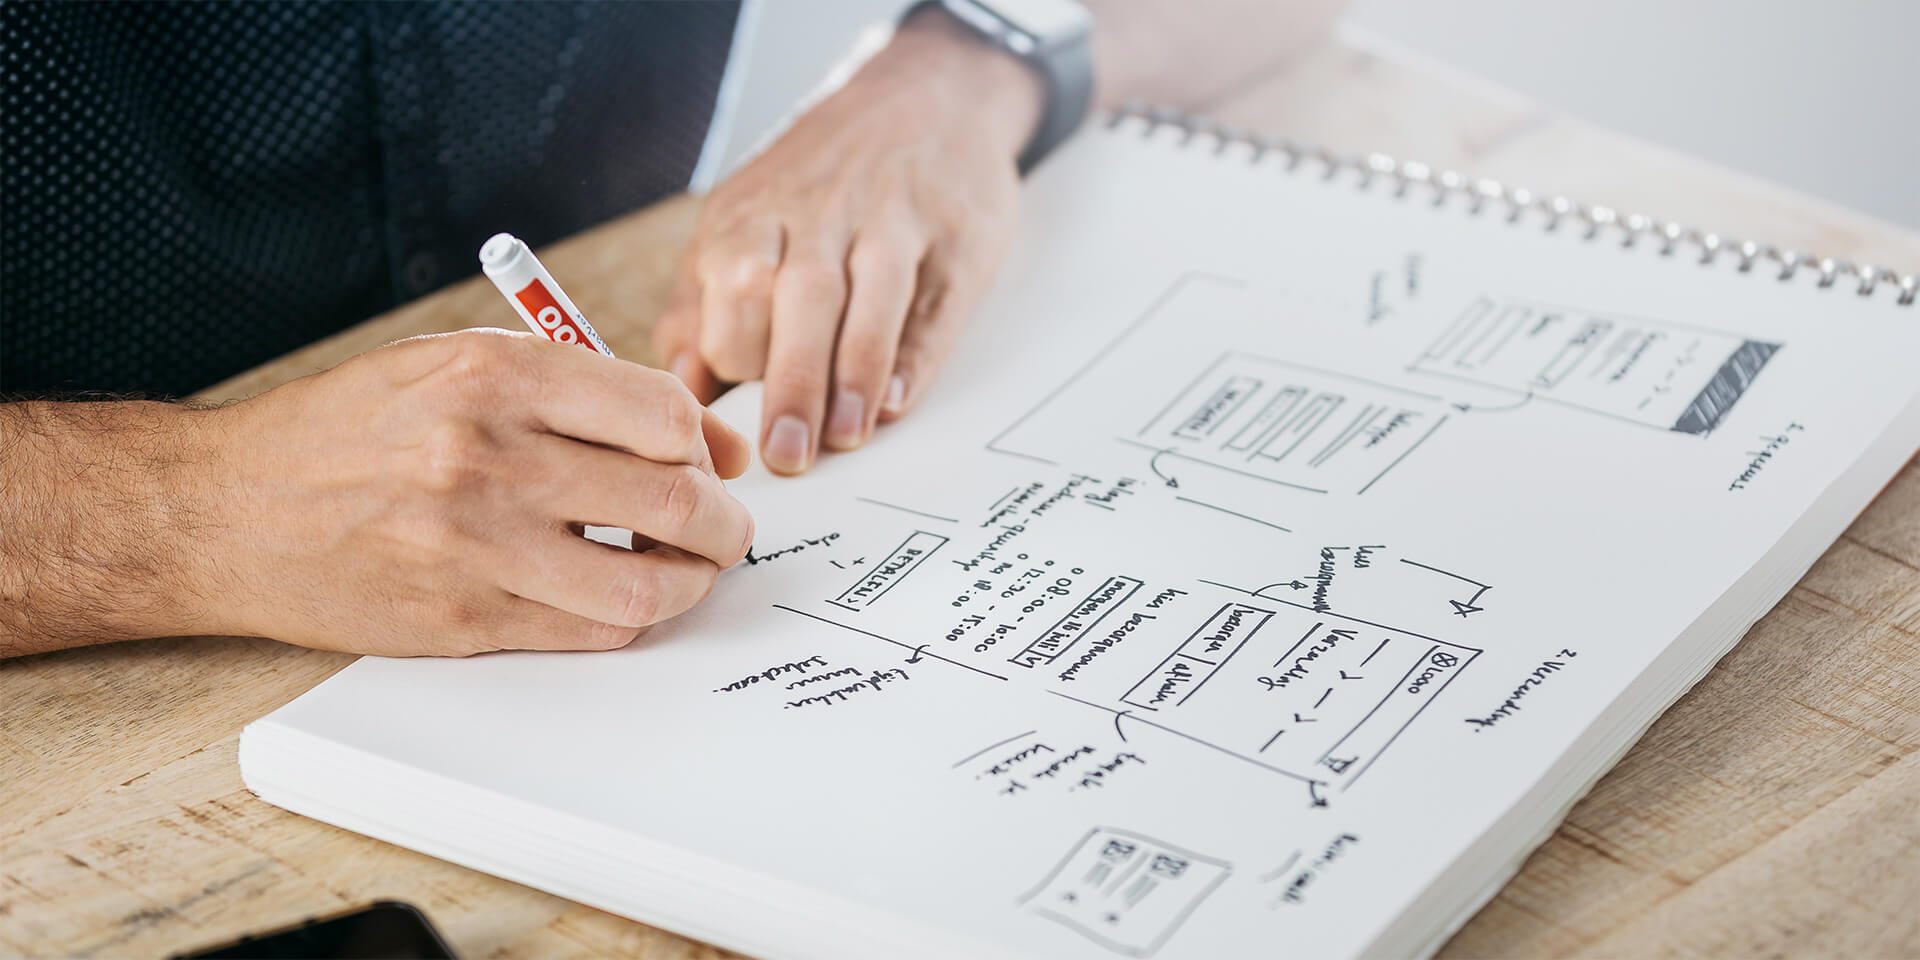 Wireframing Magento Check-out